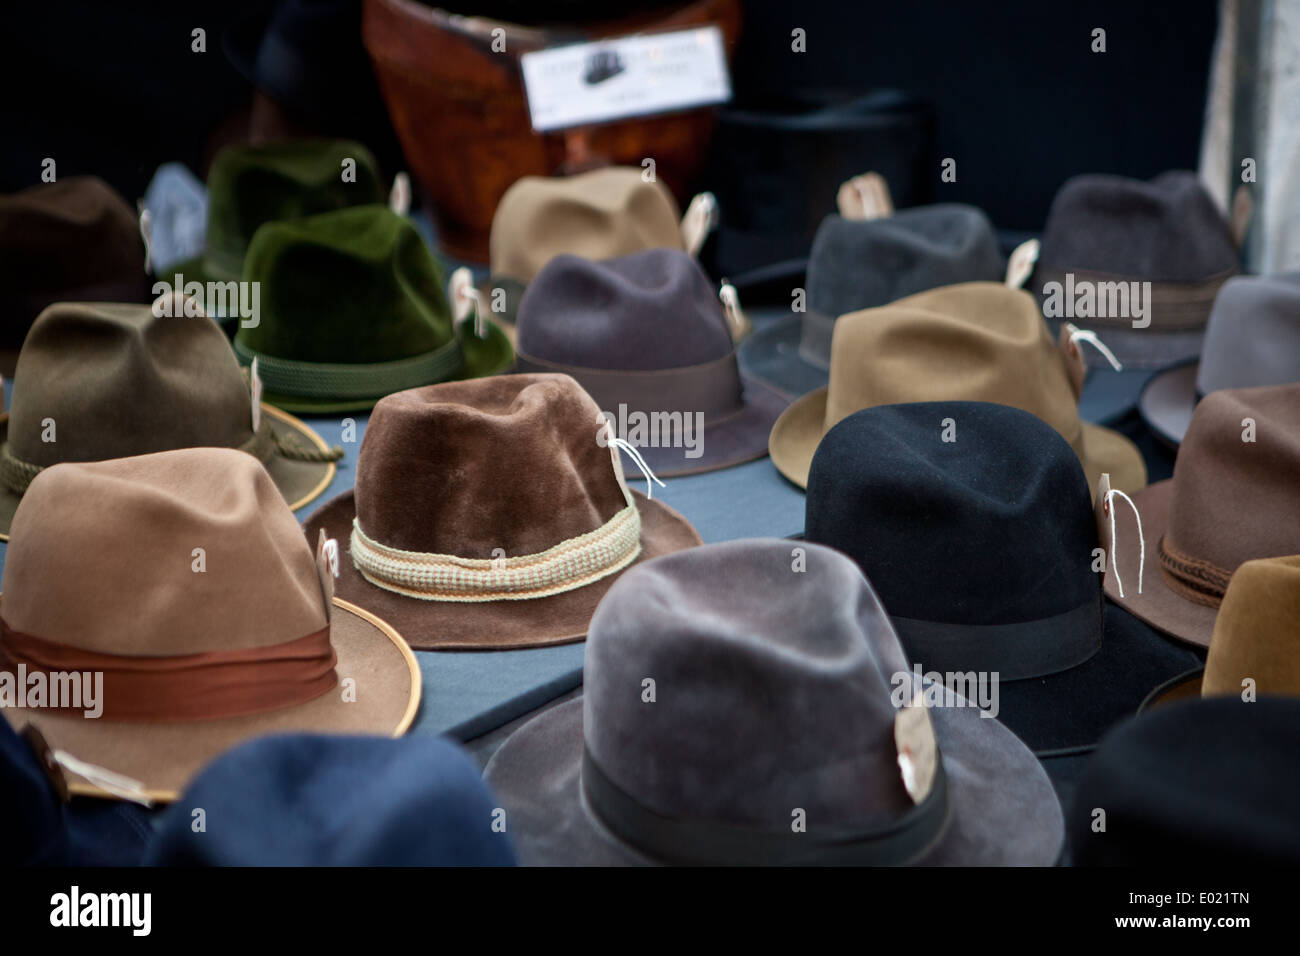 906e1227cd9ab6 Trilby Hats Stock Photos & Trilby Hats Stock Images - Alamy